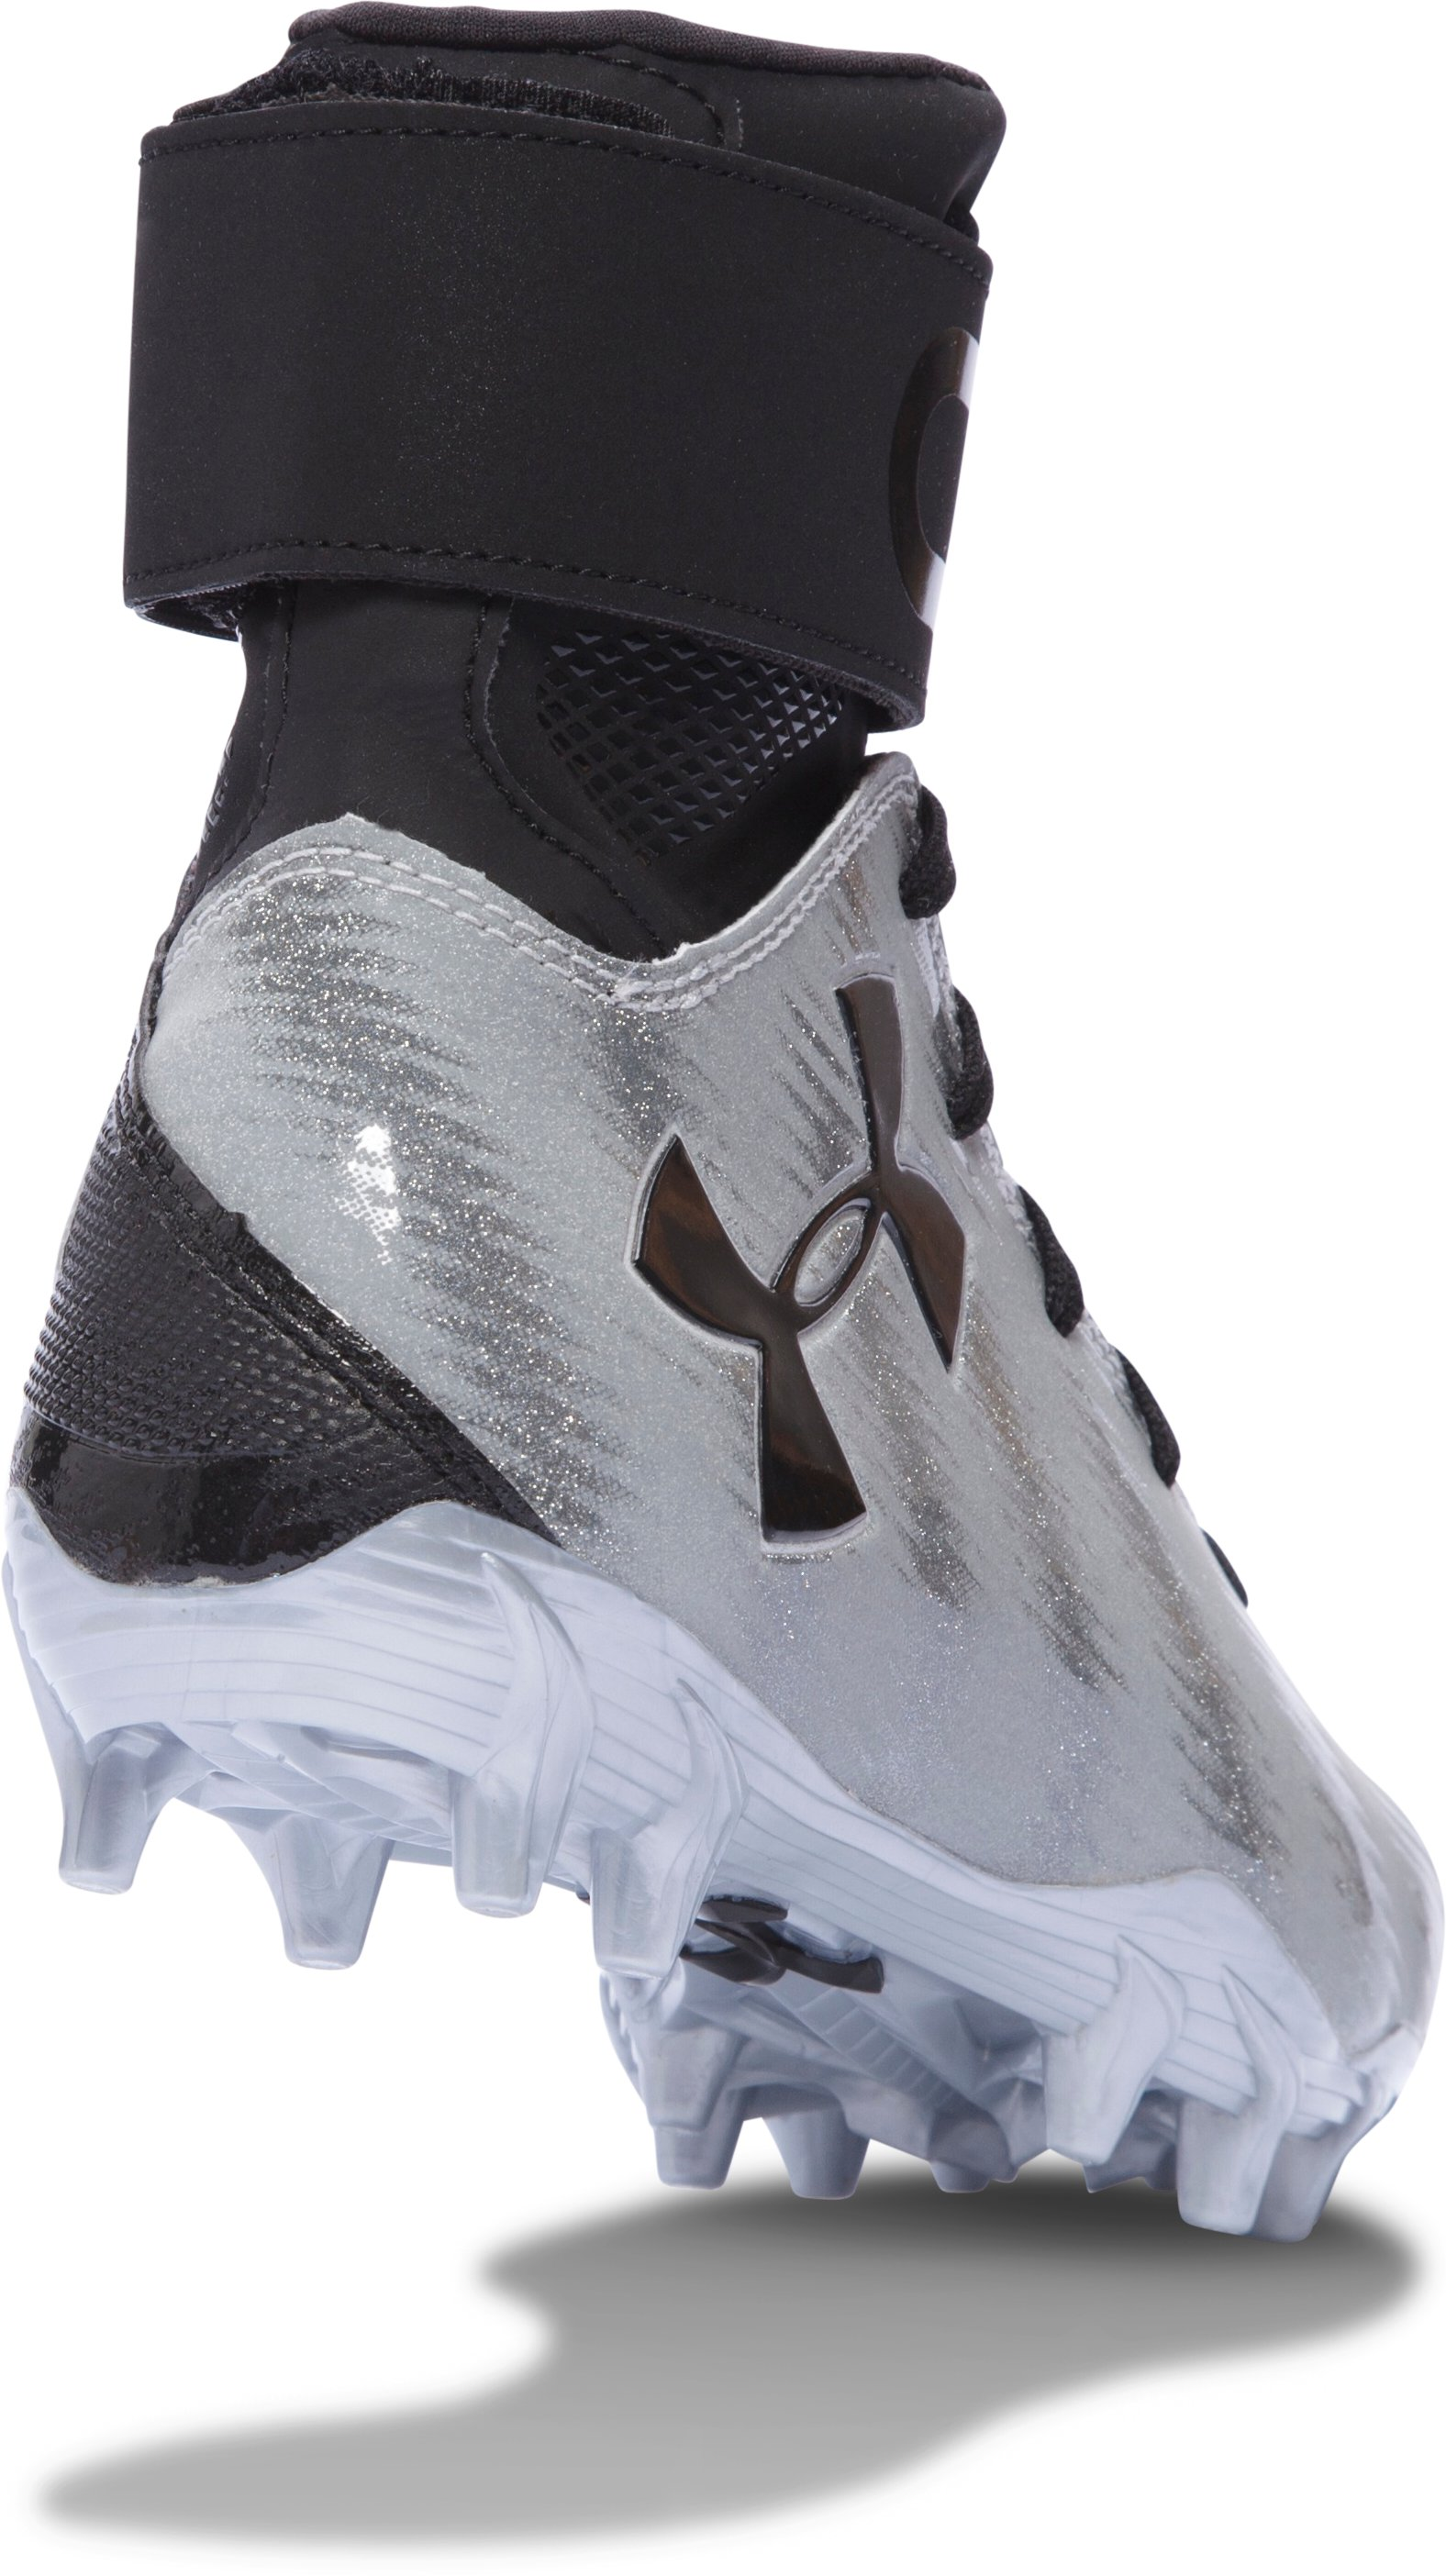 Boys' UA C1N MC Jr. Football Cleats, Metallic Silver